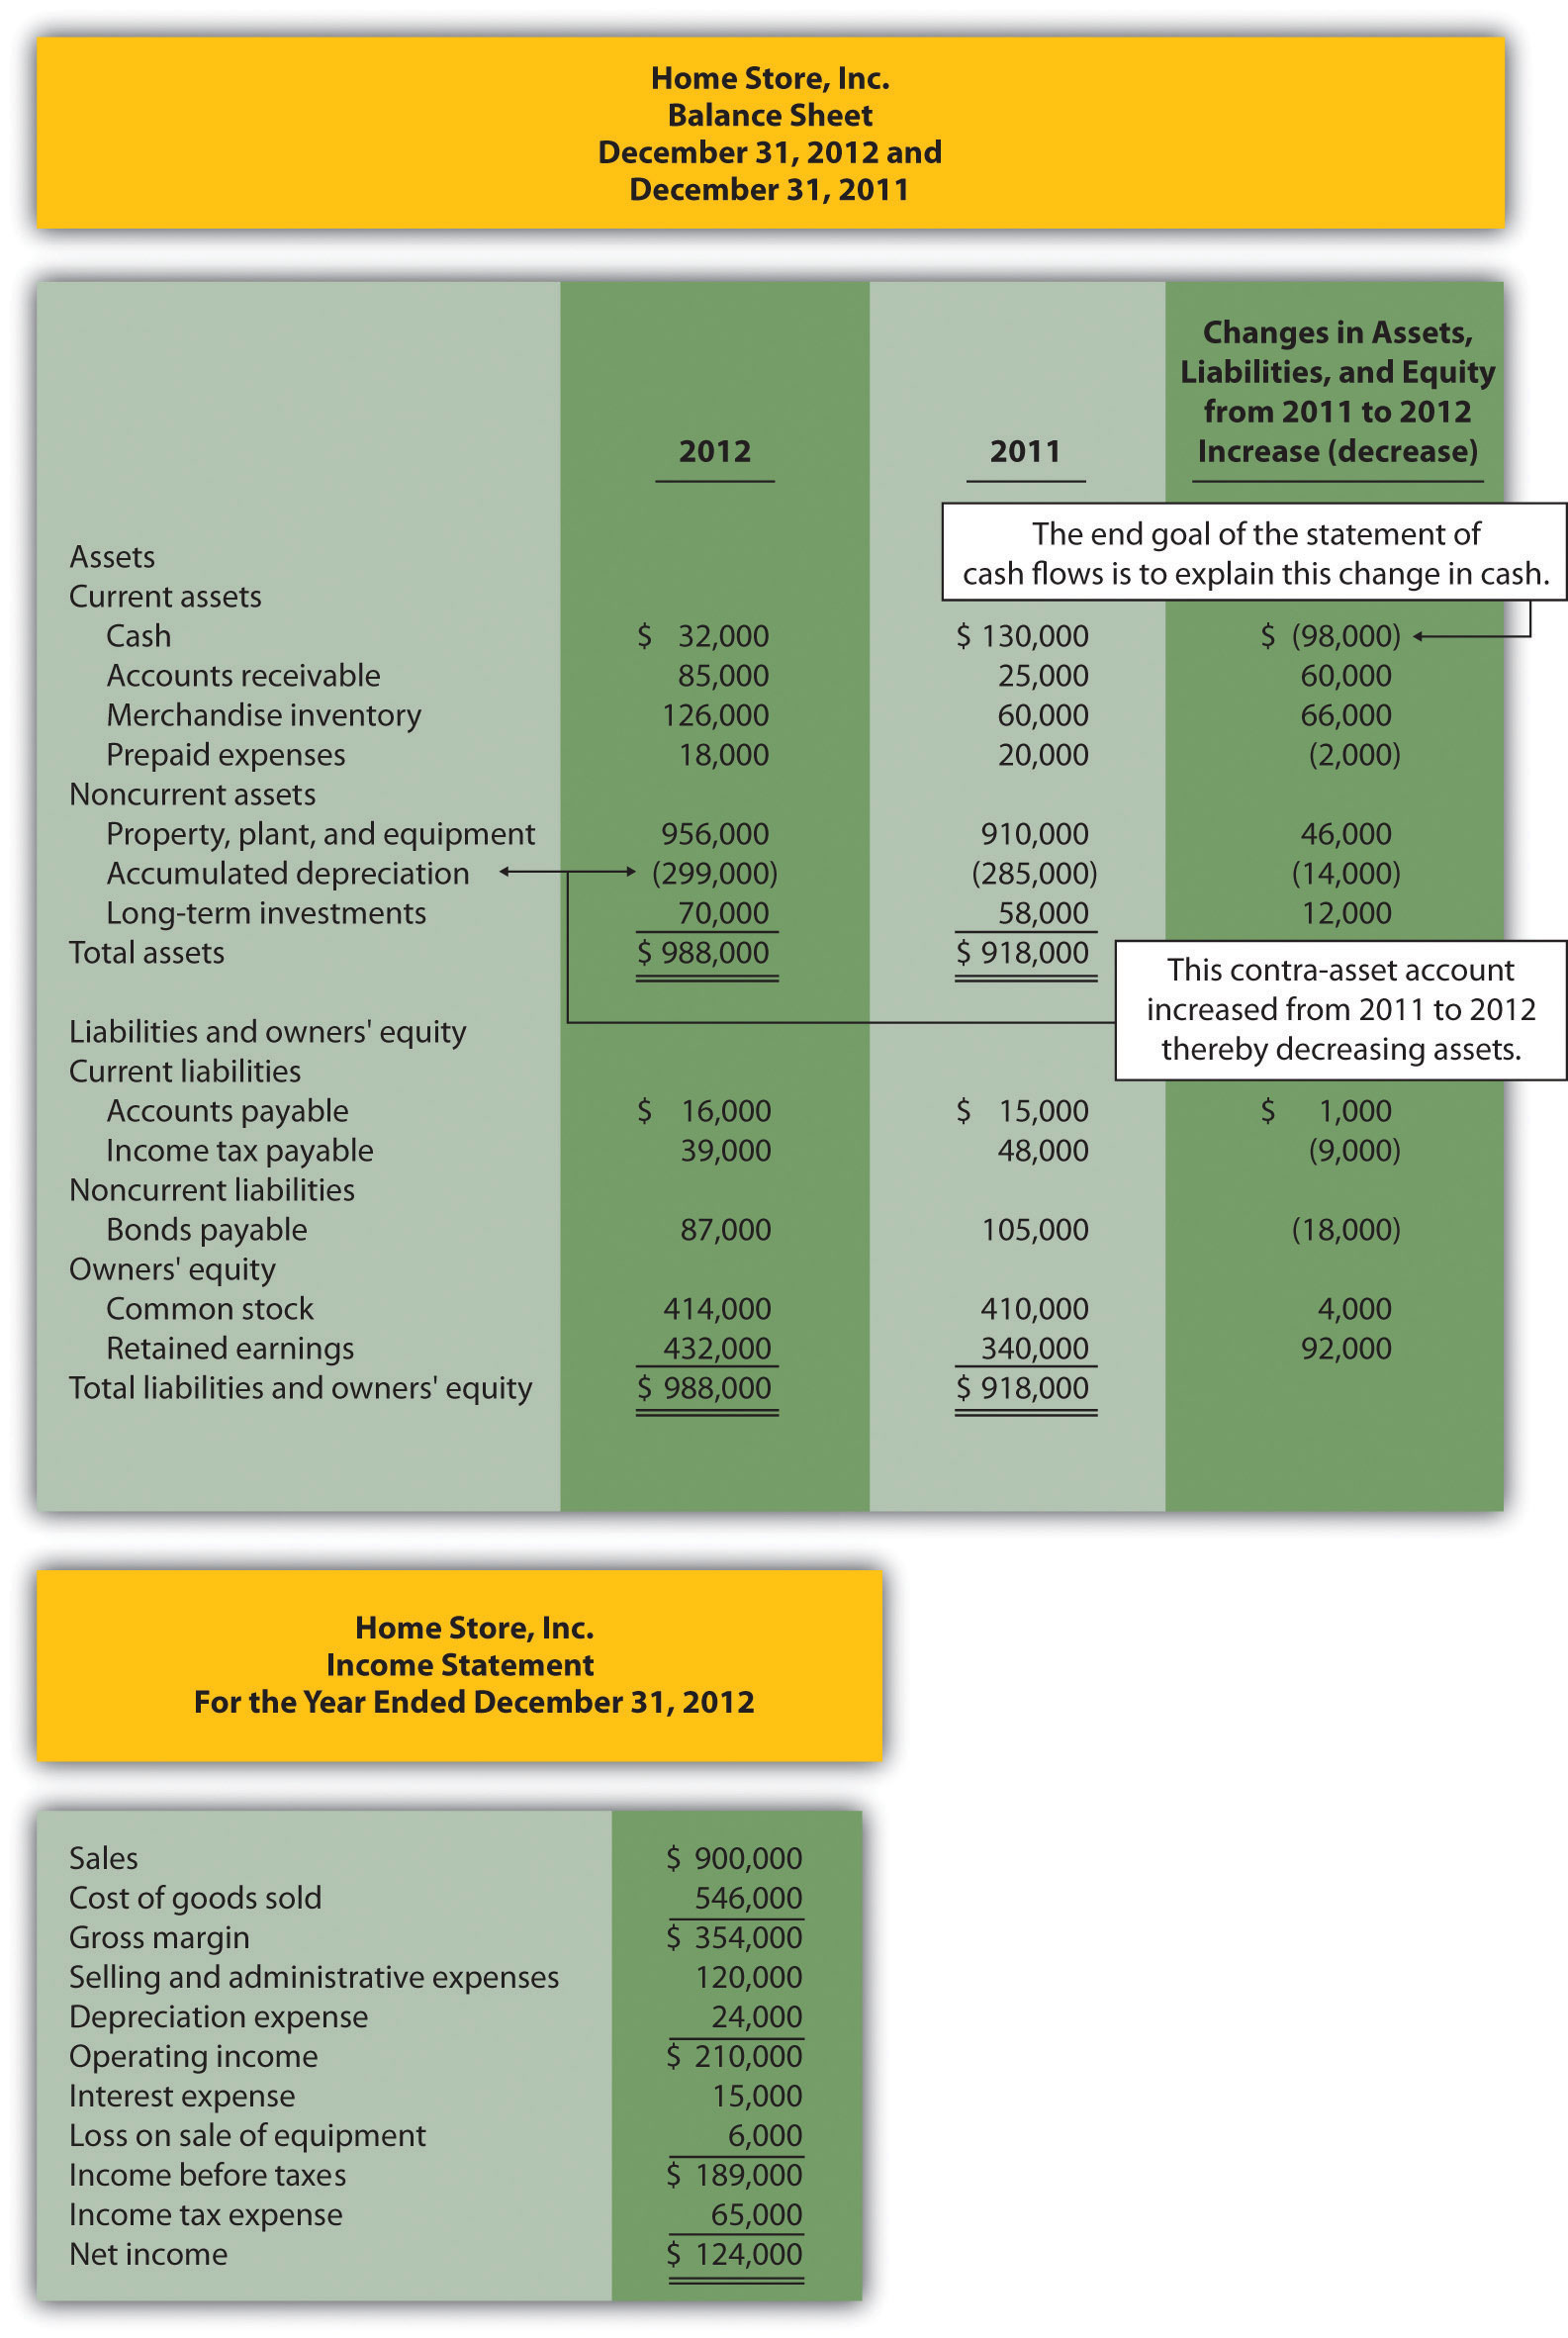 How Is The Statement Of Cash Flows Prepared And Used